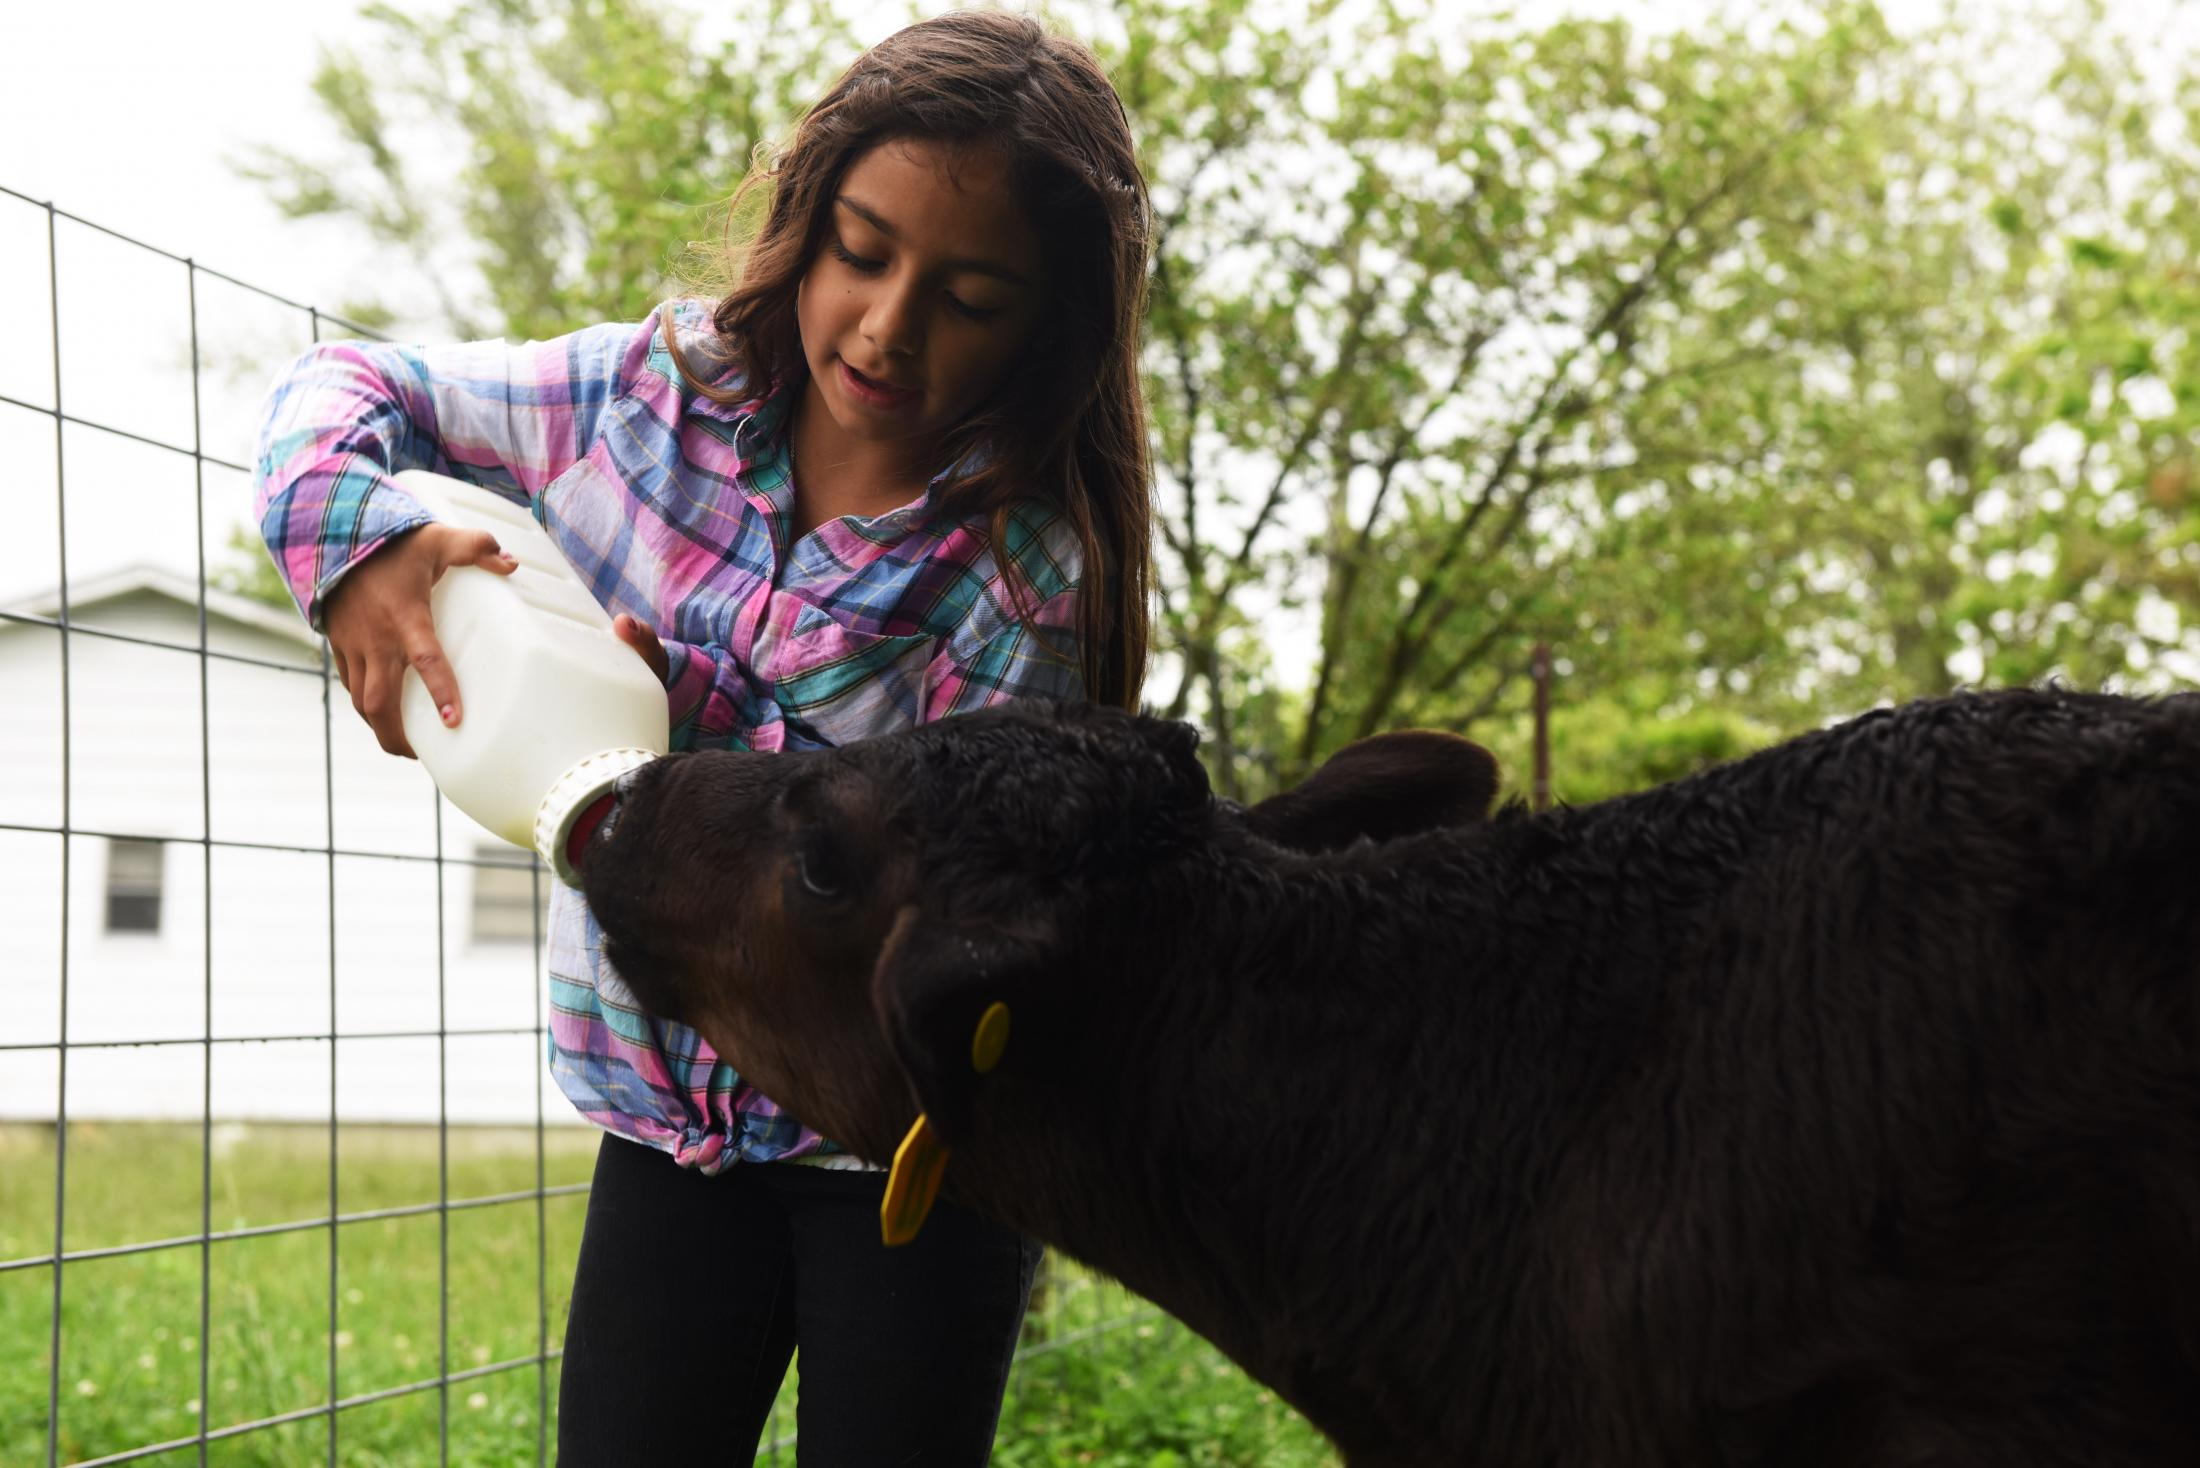 Isabelle Williams, 7, feeds a bottle calf whose mother was not able to raise it on Tuesday, May 19, 2020, on their farm in Clarksburg Missouri. The proposed Tipton East CAFO would cause toxic nitrates to contaminate the water supply for the family and their livestock, Williams said.  Williams said the toxins can make people sick and sterilize livestock which would prevent the sustainability of staying on their farm.